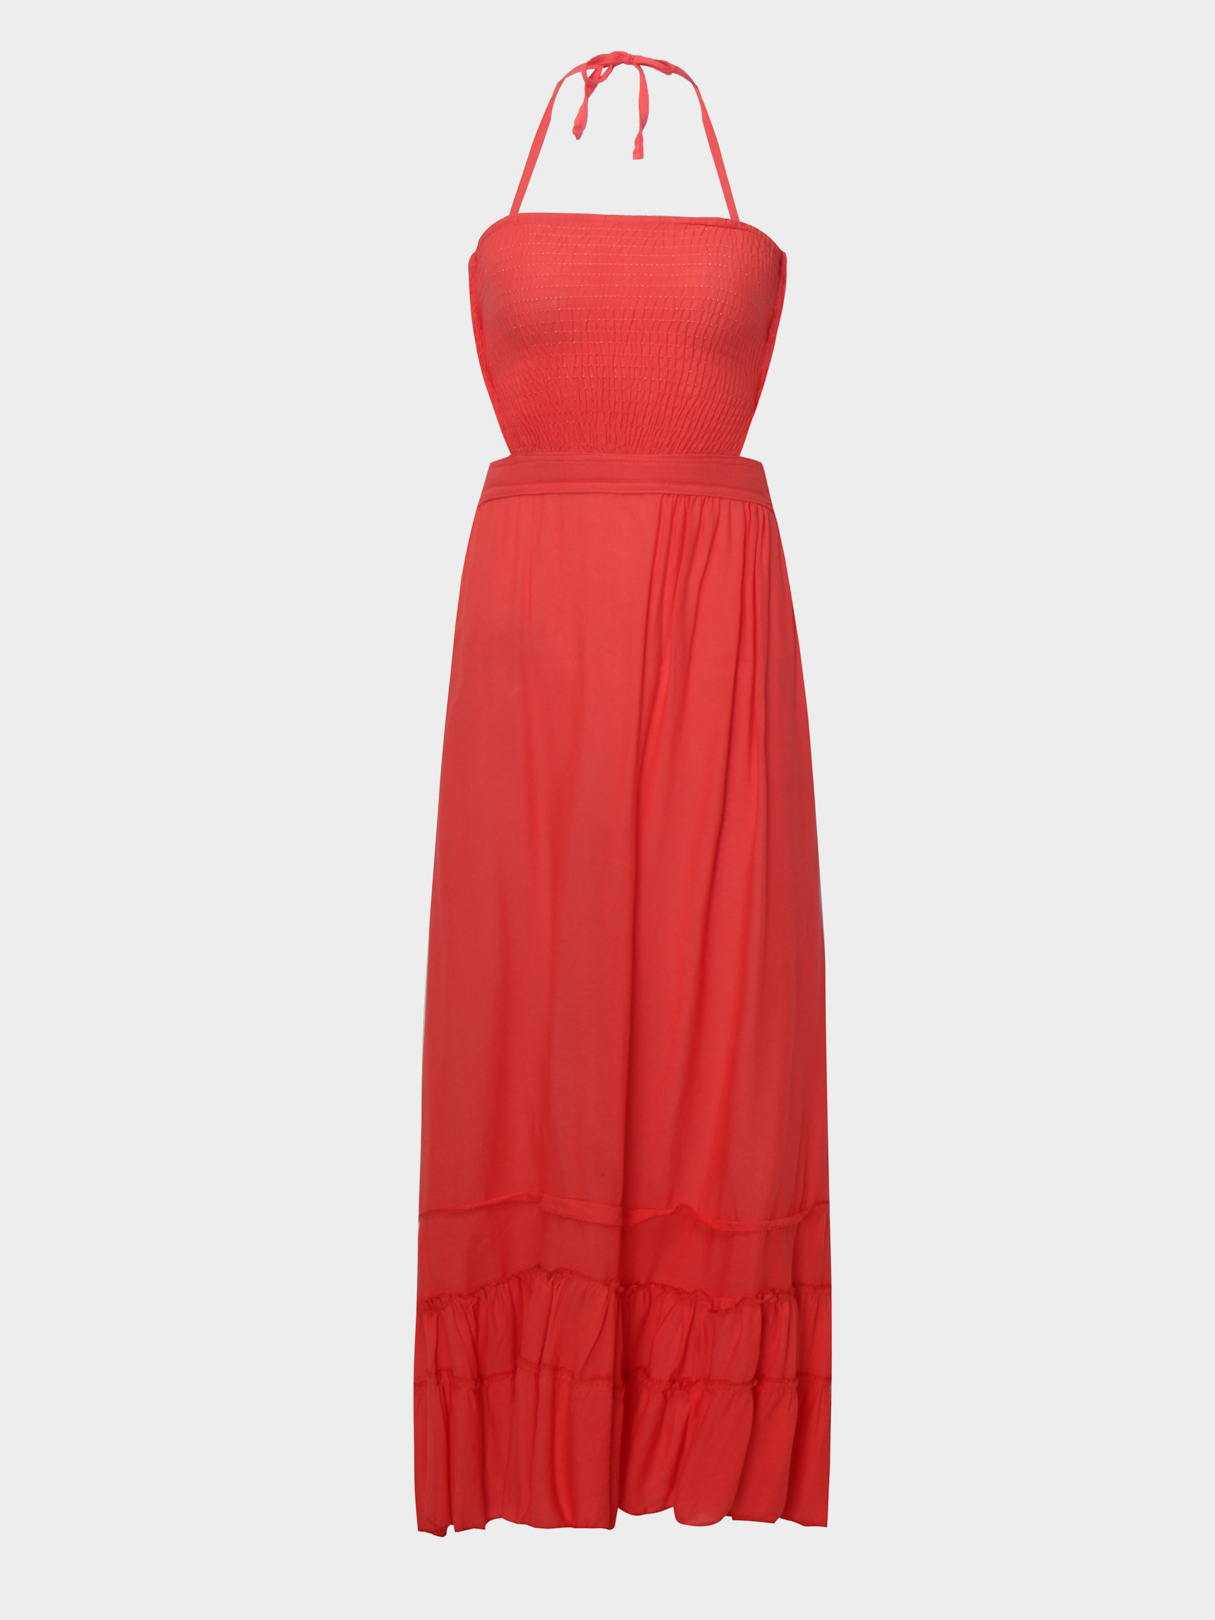 Orange Backless Design Plain Halter Sleeveless Maxi Dress orange pleated design zipper front sleeveless sexy mini dress